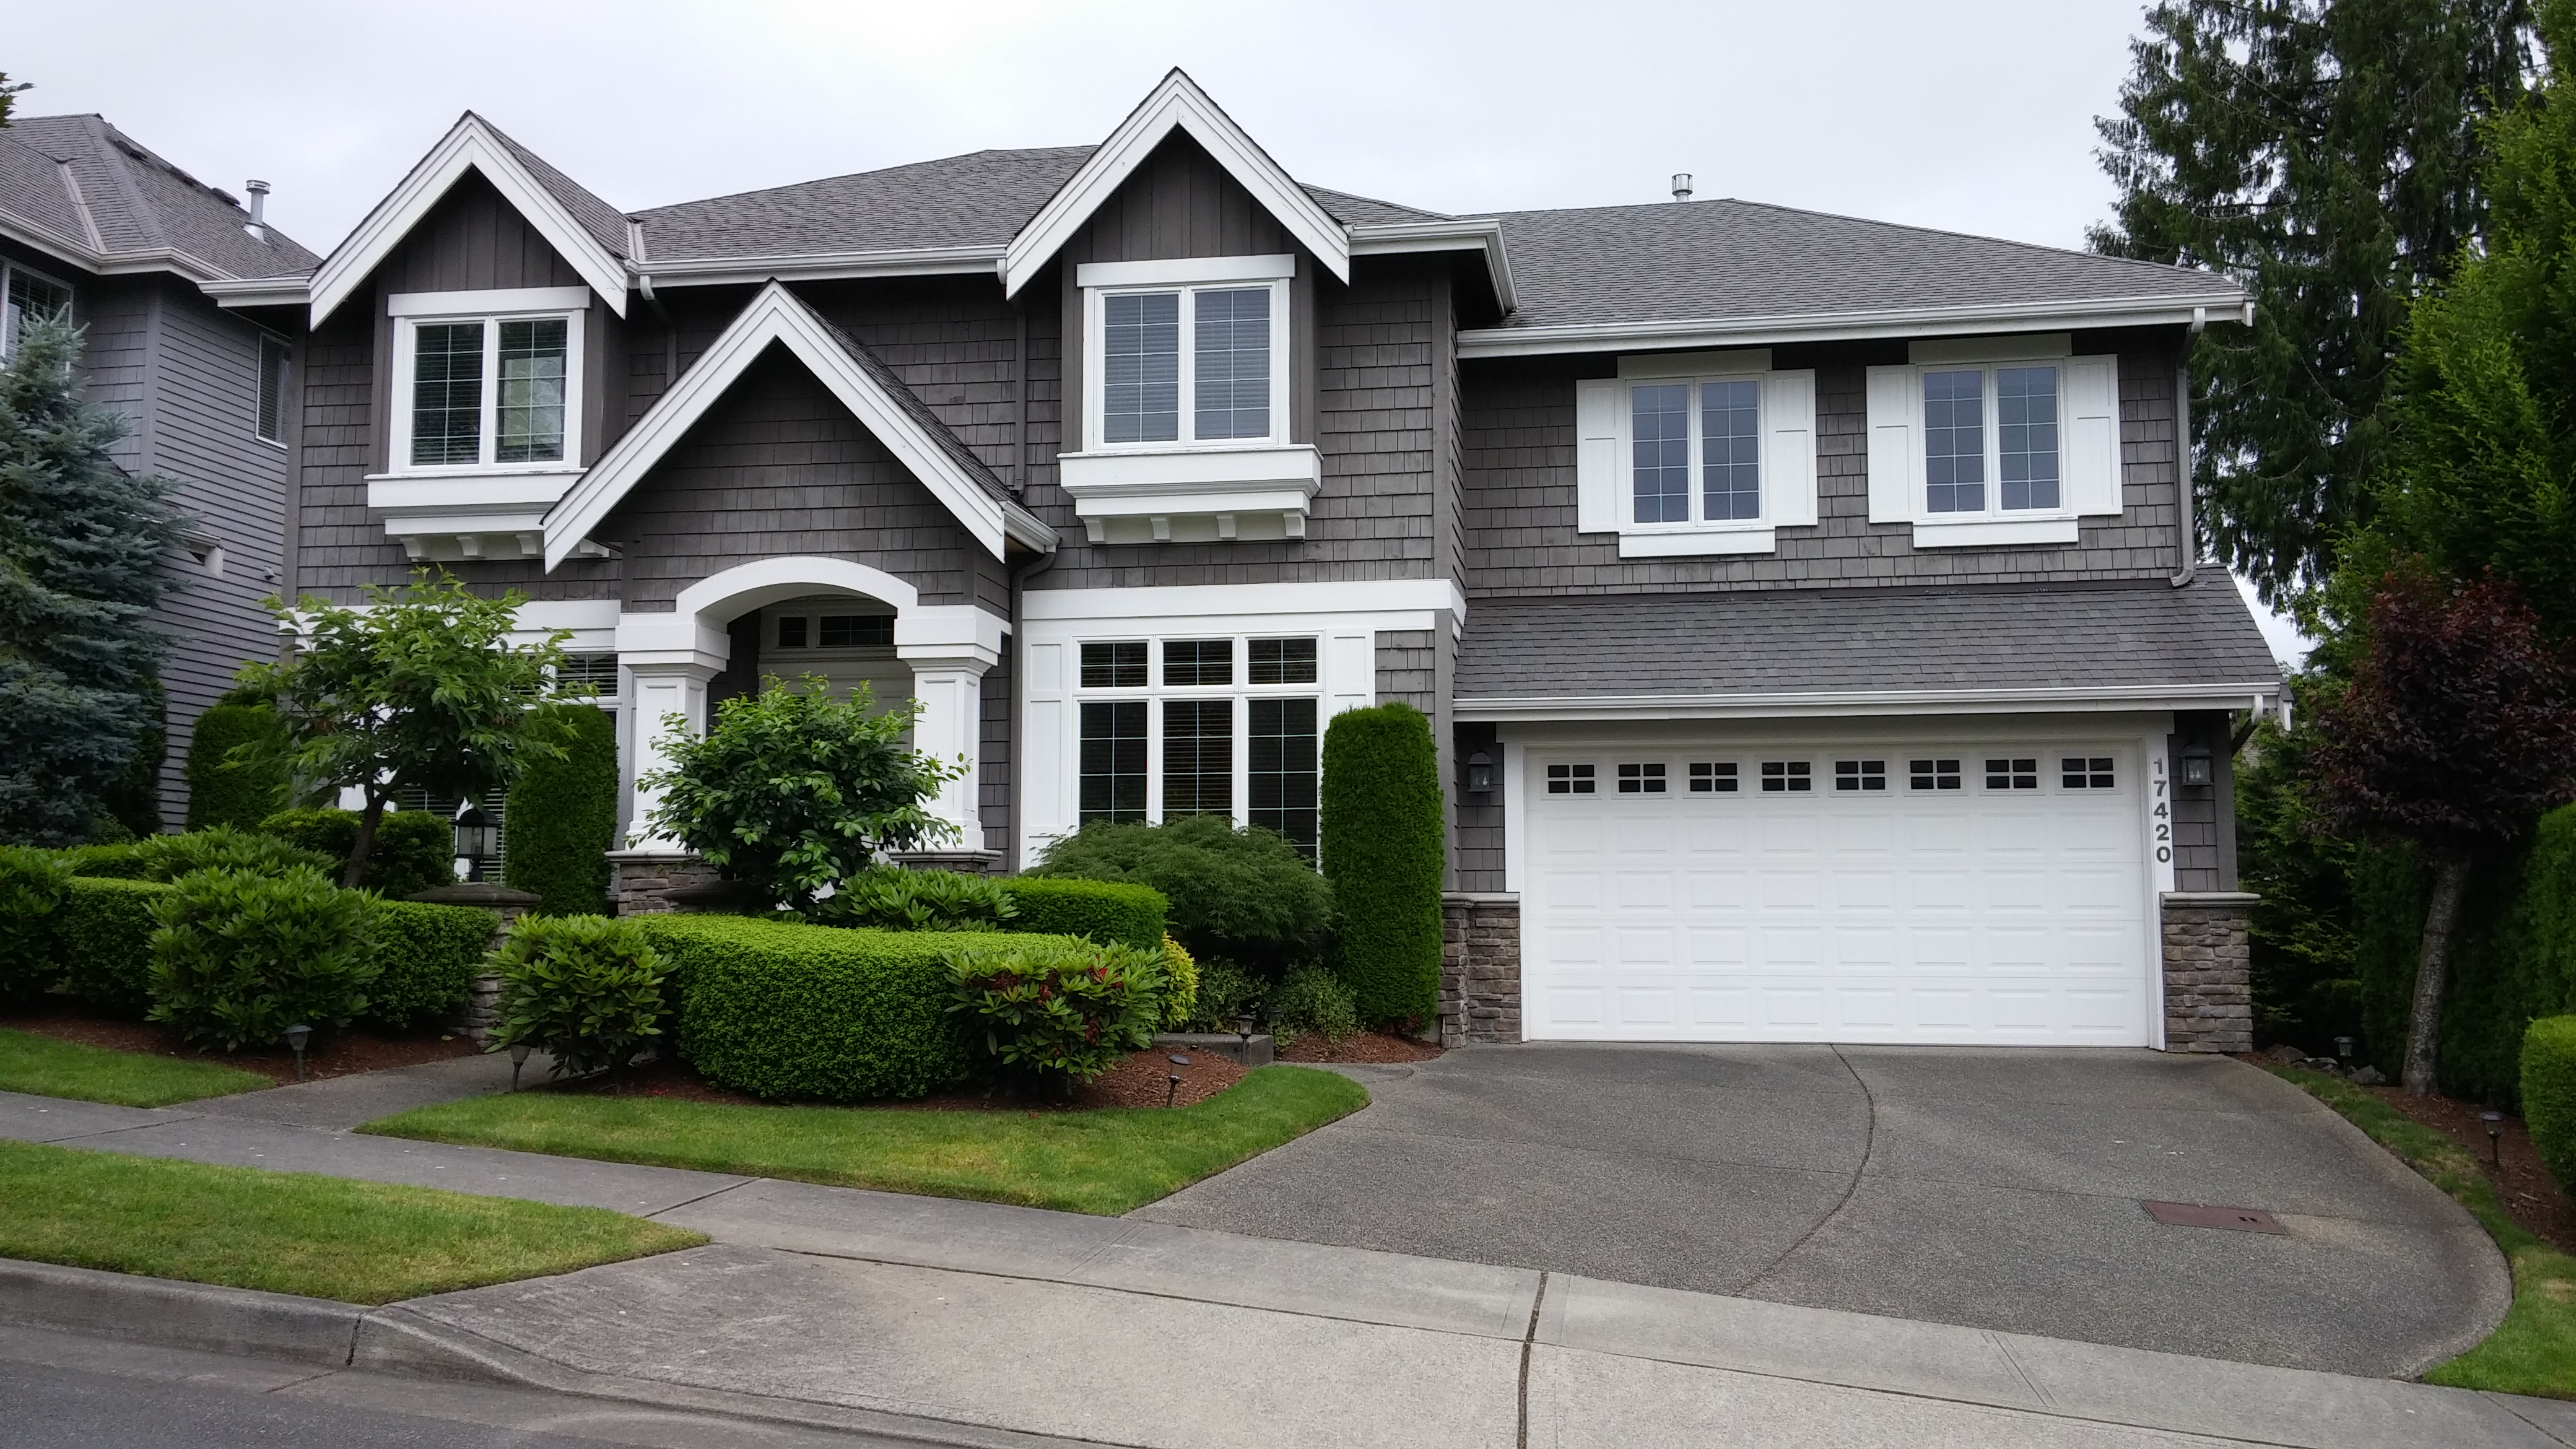 Home Insurance in Shoreline, WA